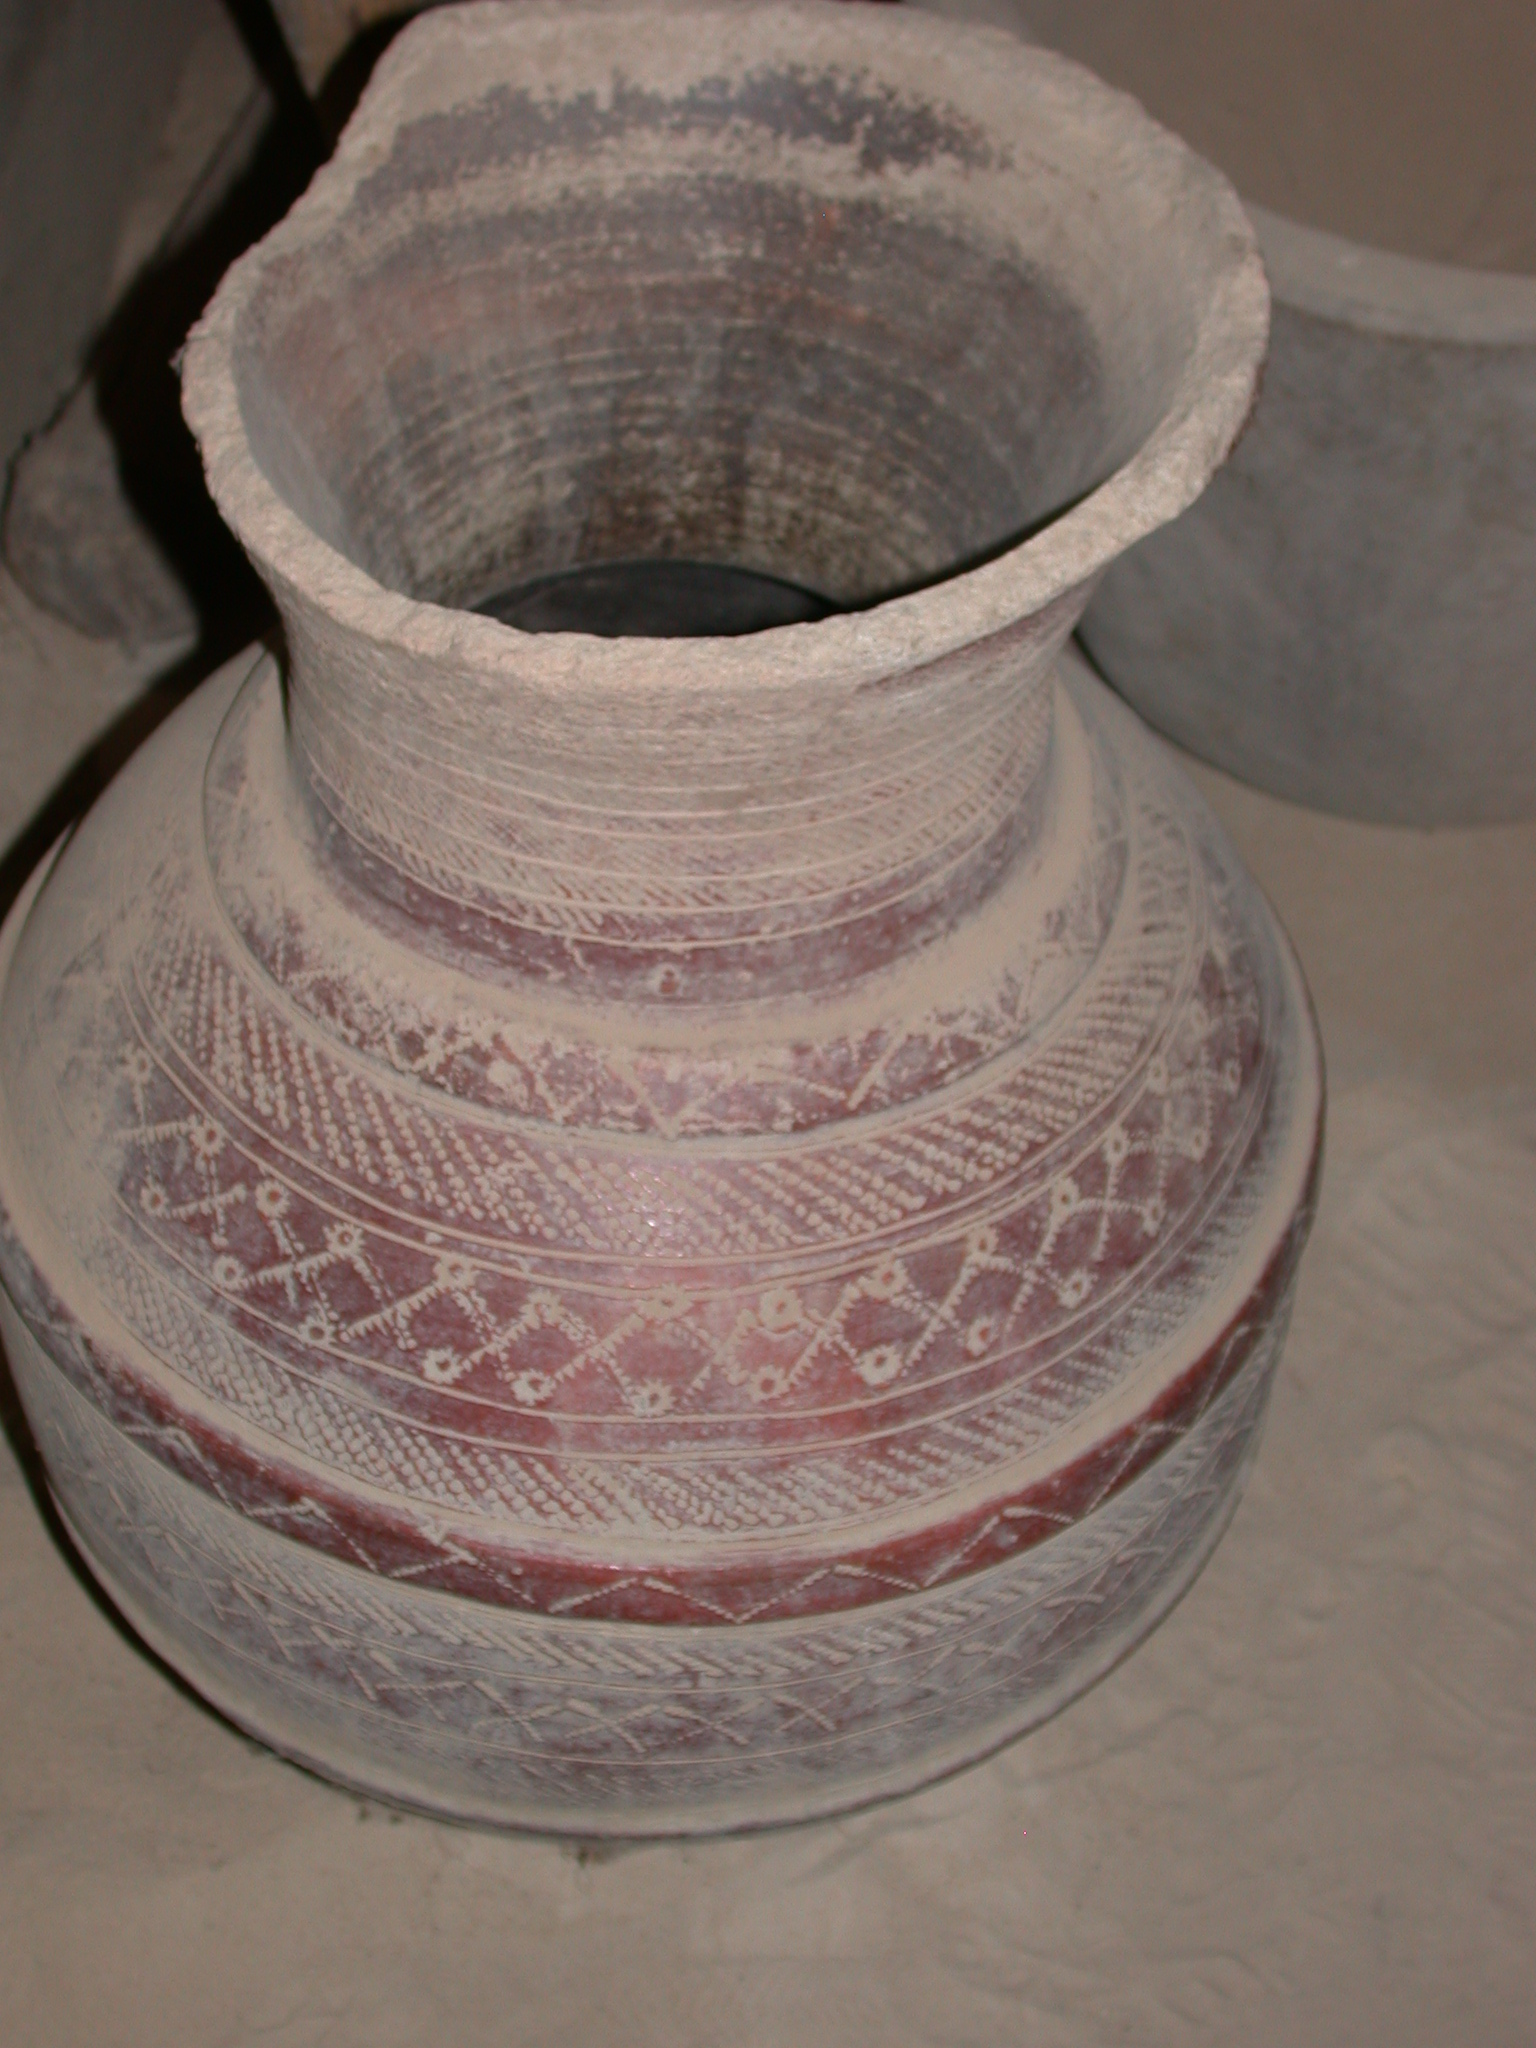 Decorated Ceramic Vase, Timbuktu Ethnological Museum, Timbuktu, Mali